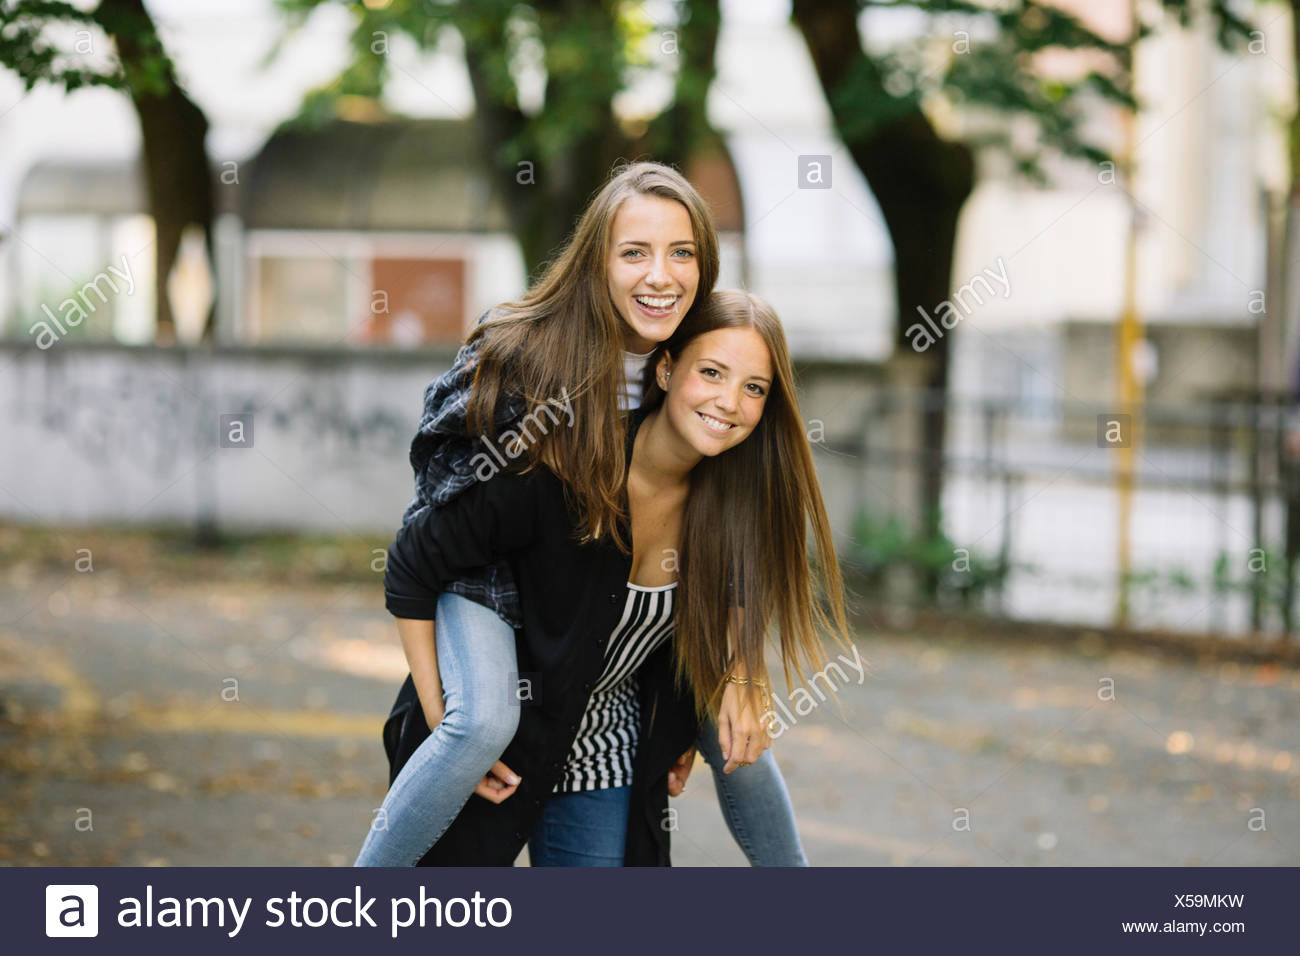 Portrait of young woman giving best friend a piggy back in park - Stock Image